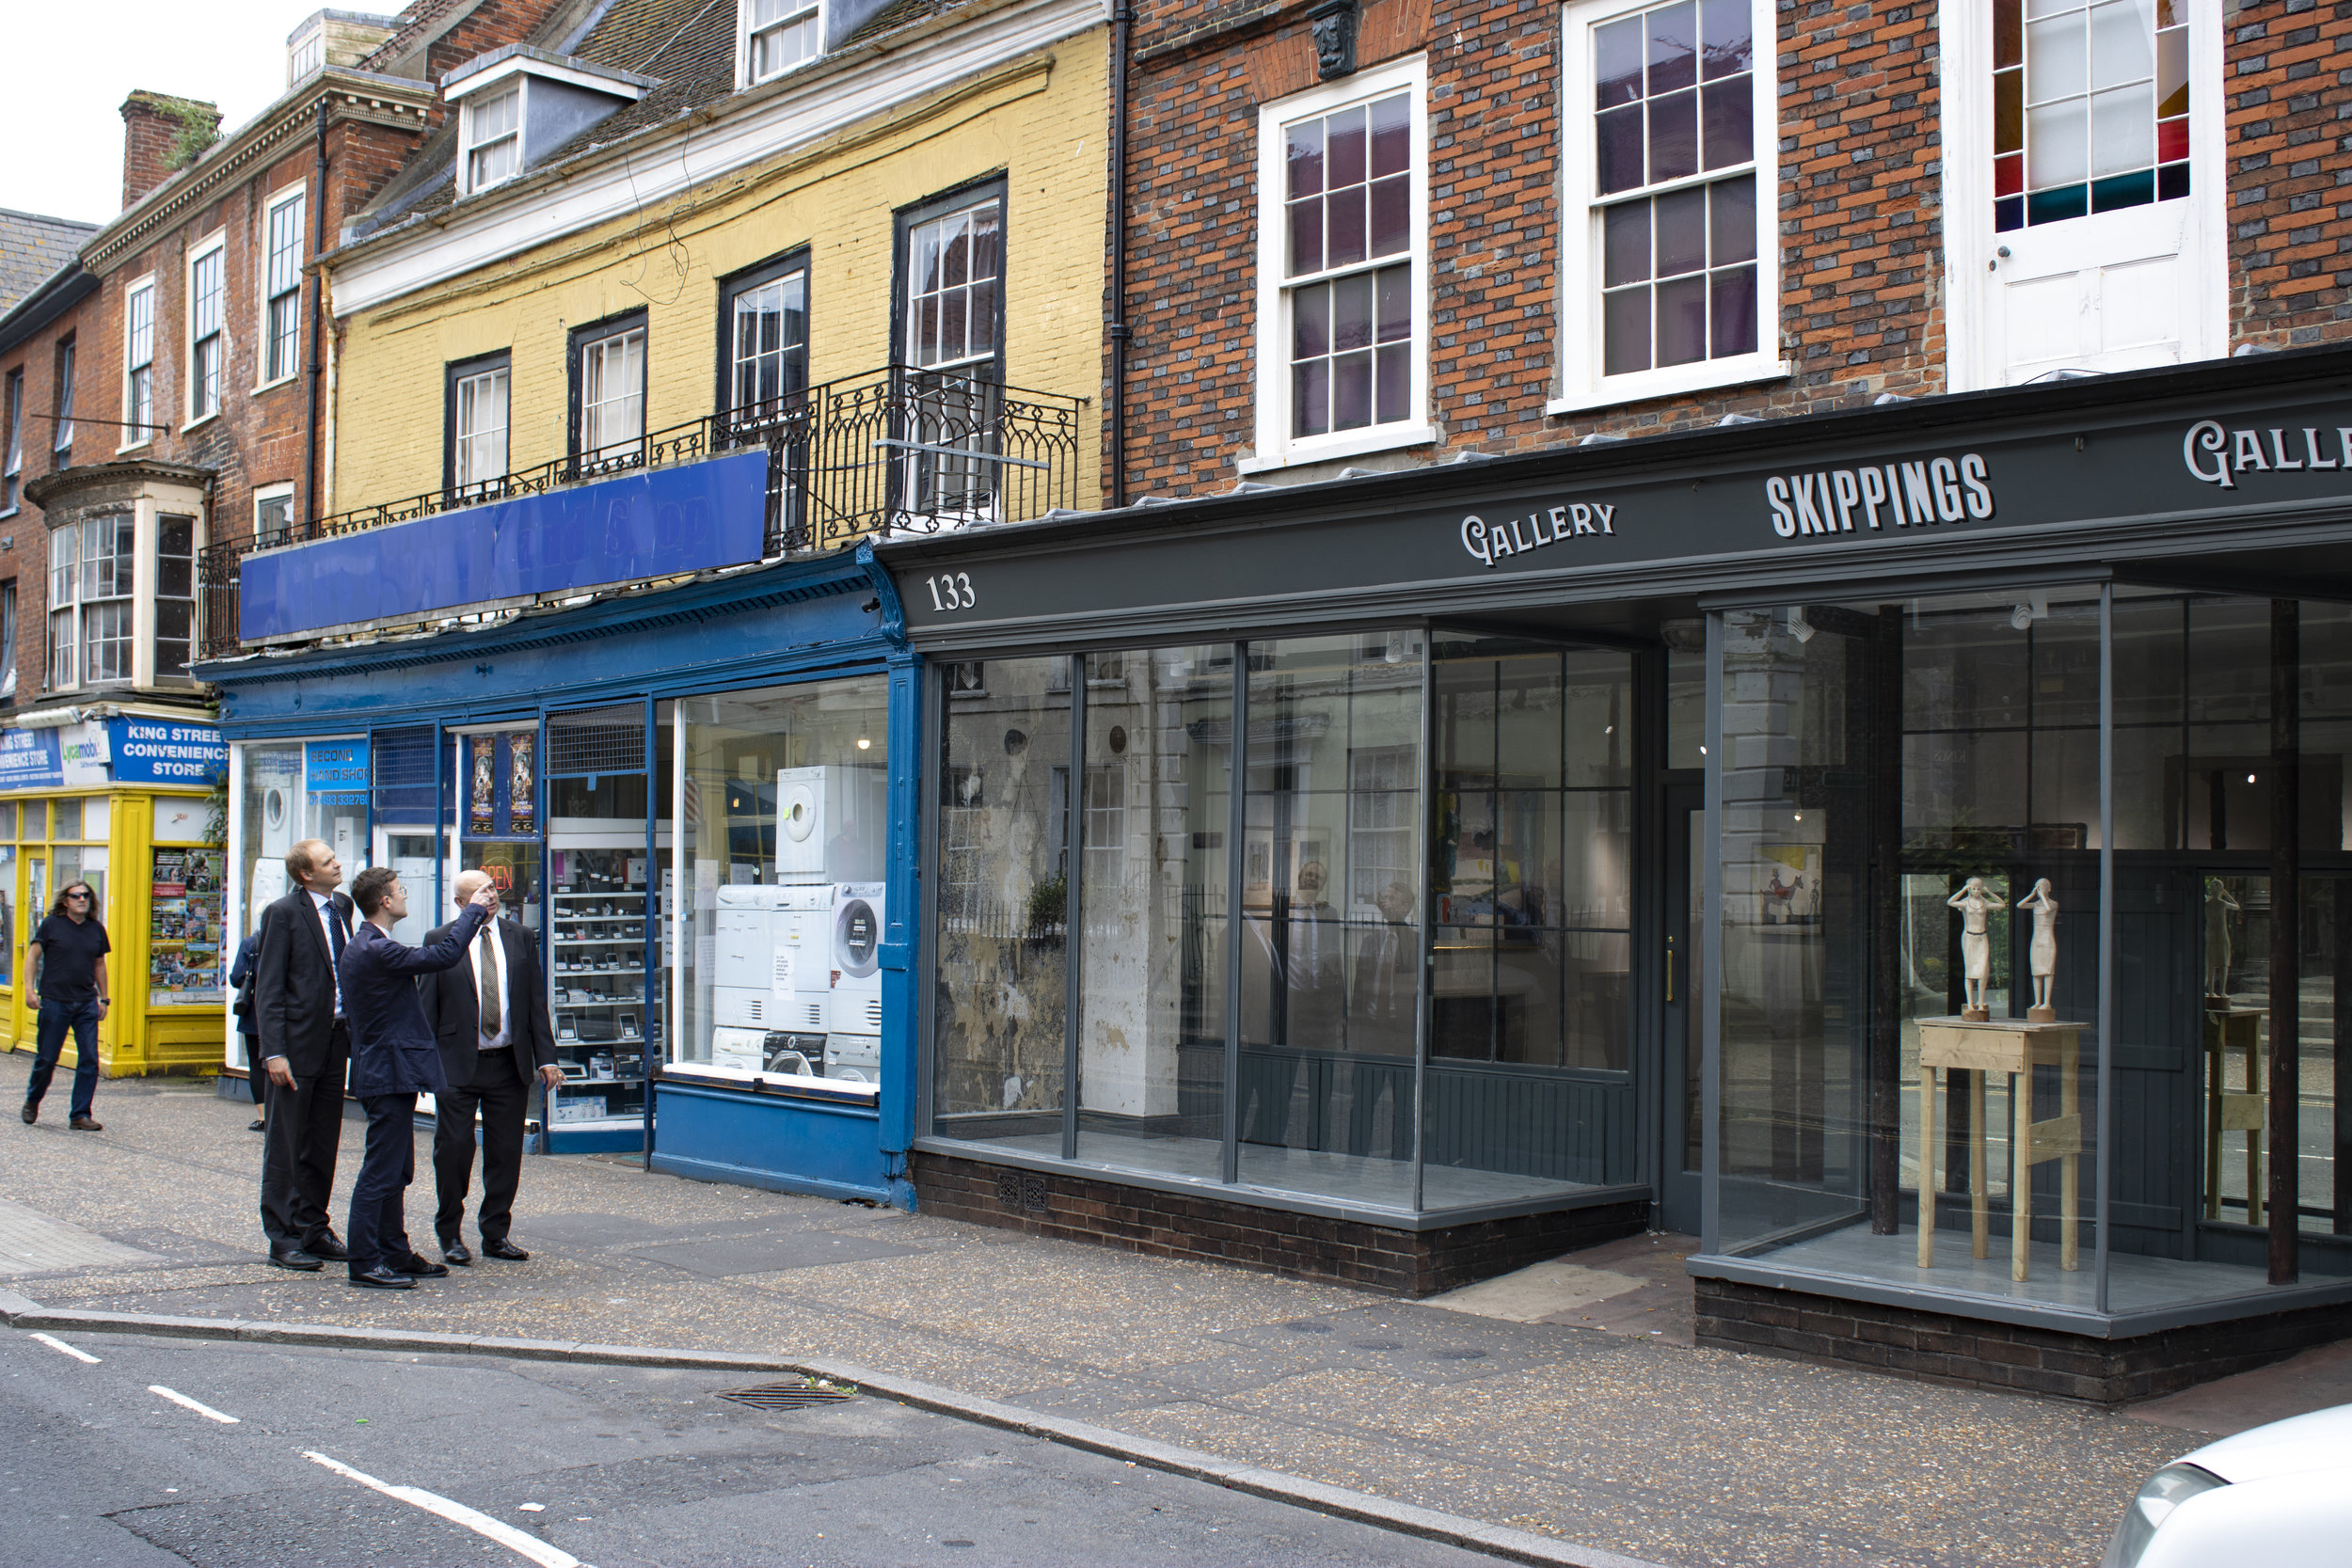 Carl Smith, David Glason and Matthew Mckeague outside the recently reopened Skippings Gallery, with housing uses above, all of which are now owned and operated by Great Yarmouth PT